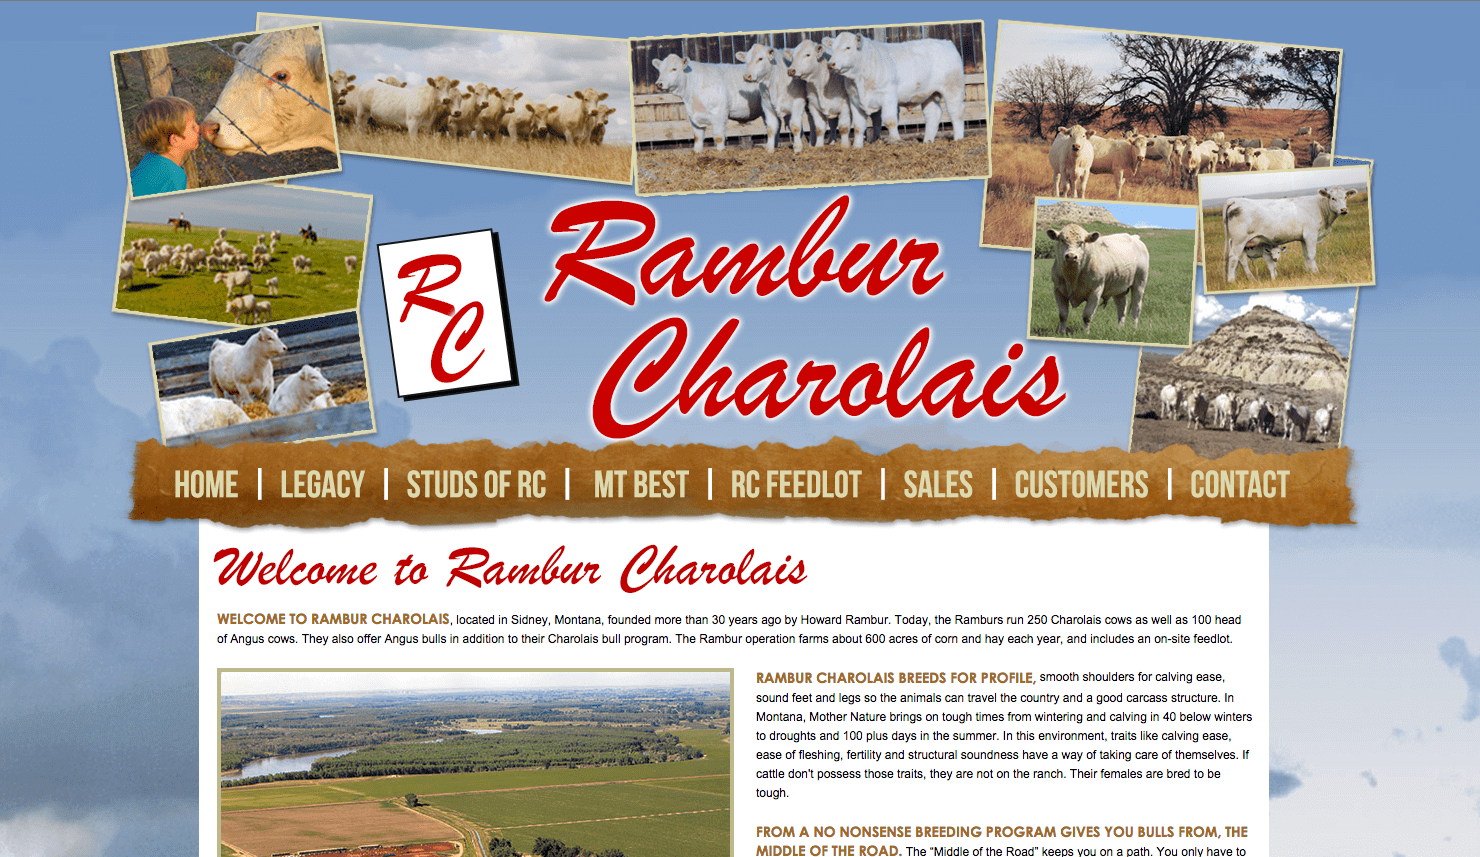 Rambur charolais ranch house designs inc Ranch house designs inc